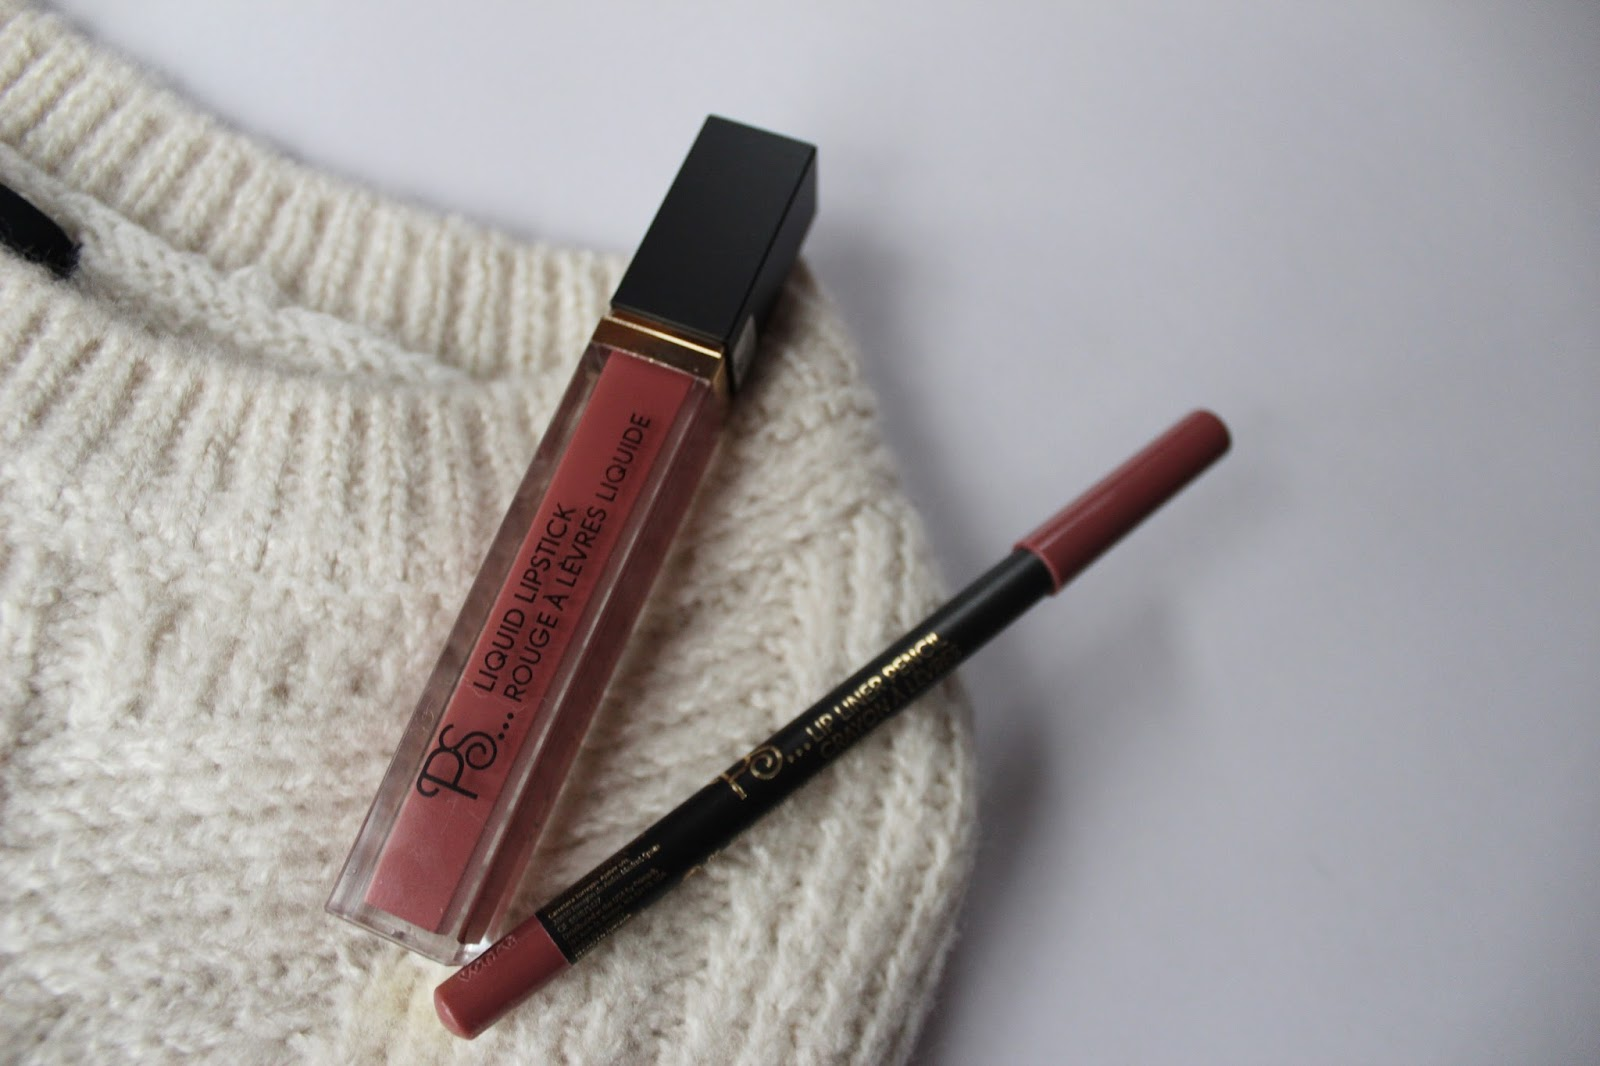 Bien-aimé CURRENT FAVE | PRIMARK LIP PRODUCTS - Street Style and Smile ZG33